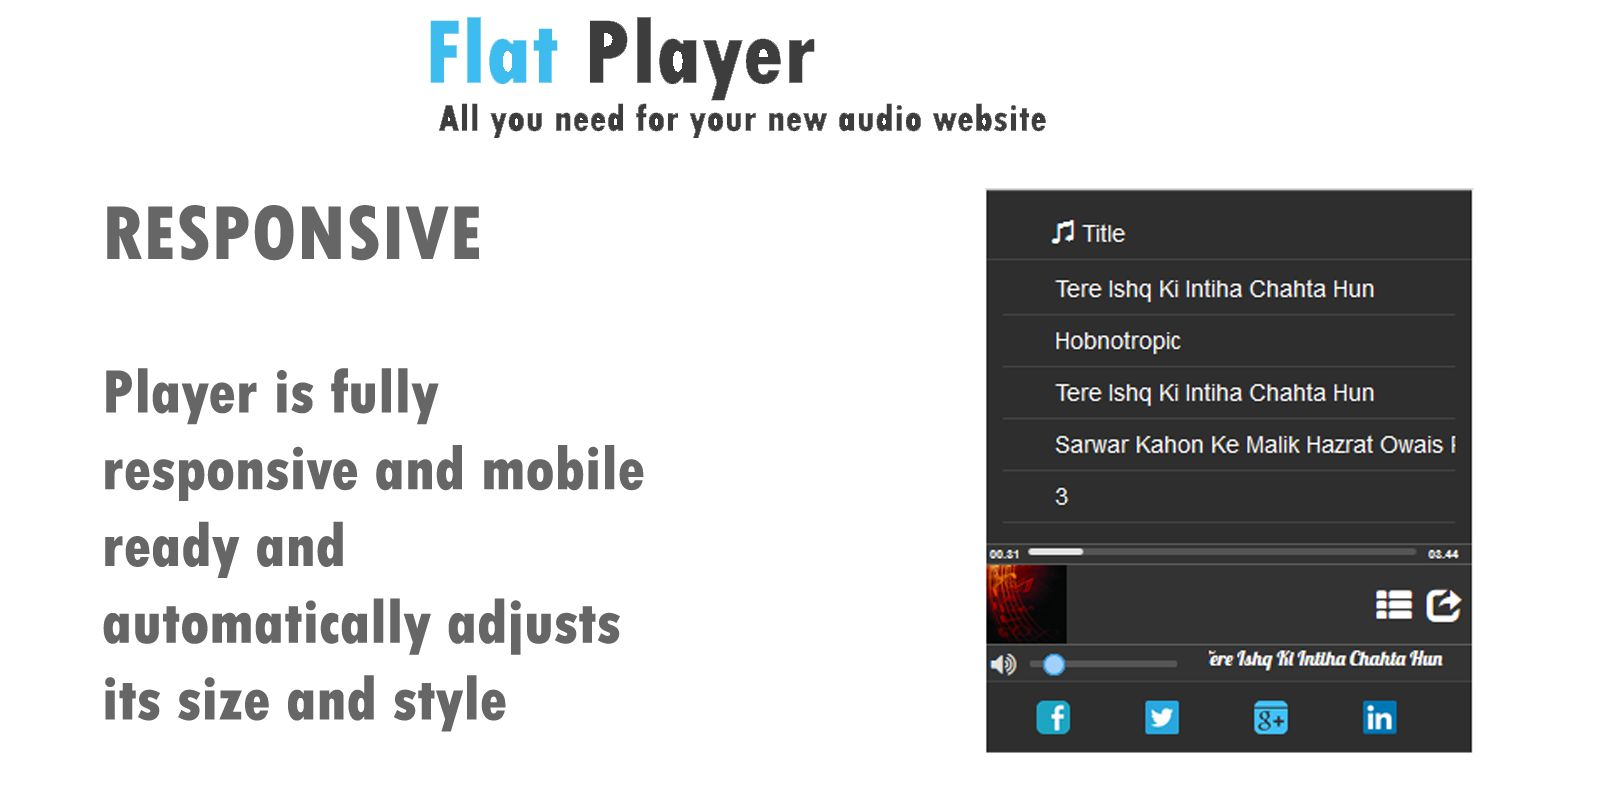 Flat Player Screenshot 2